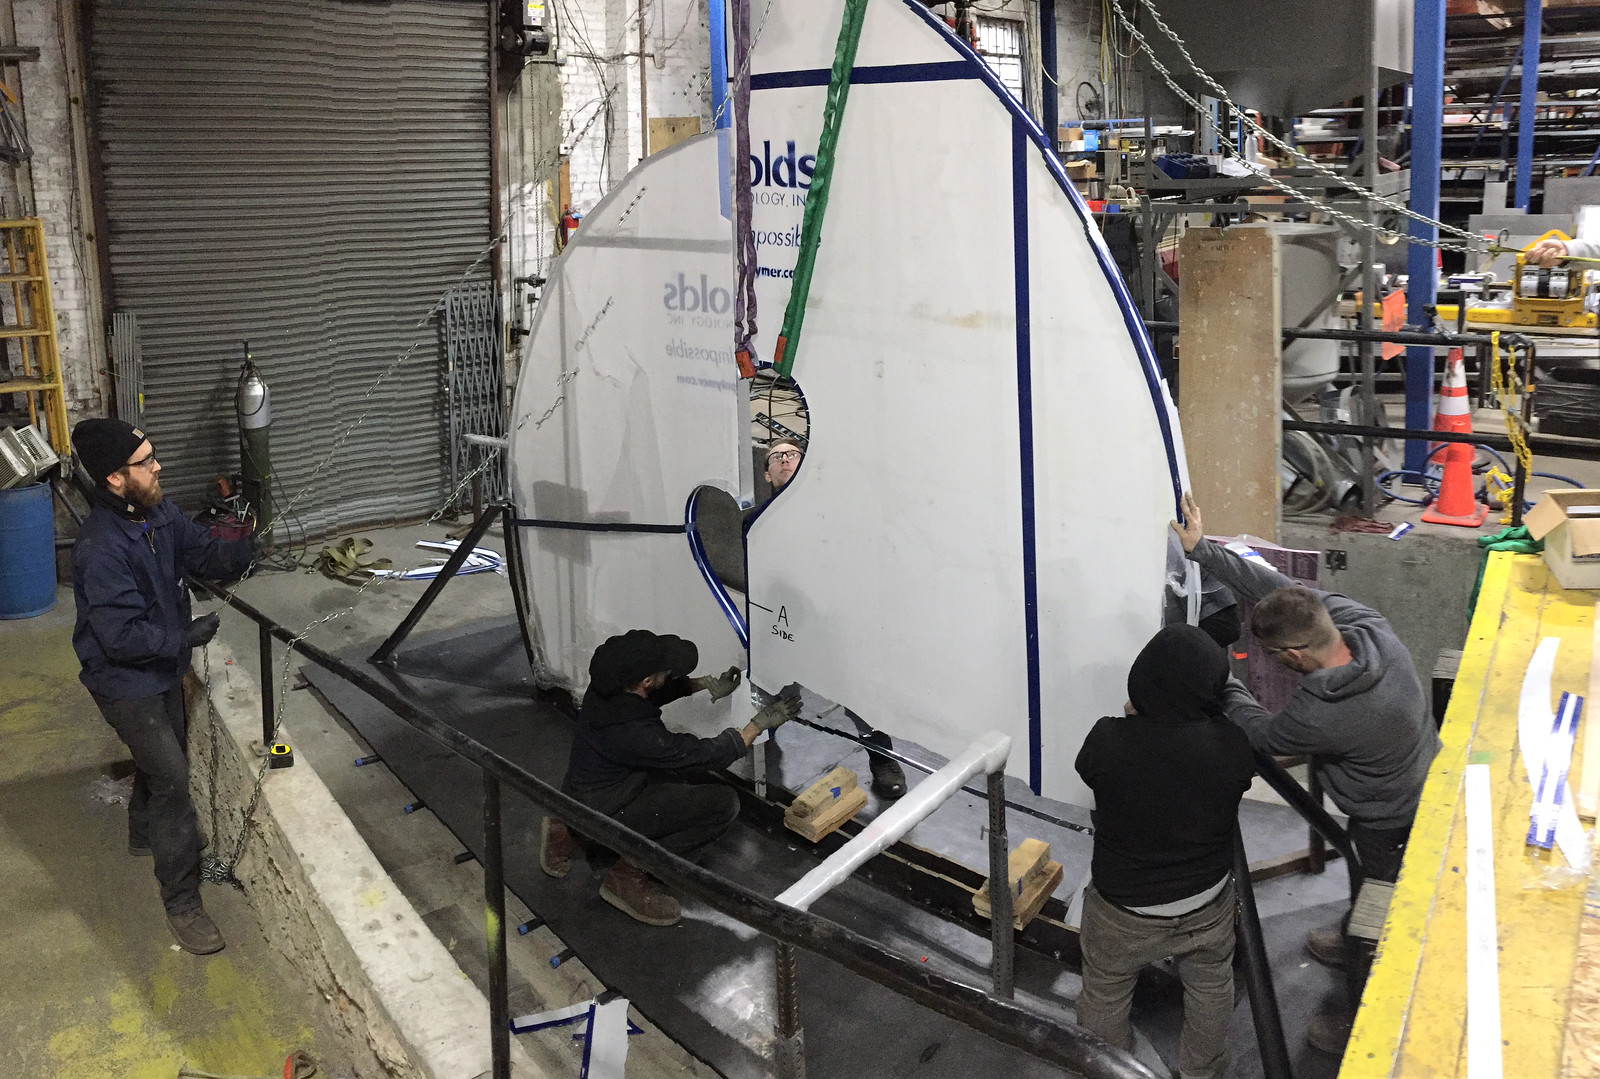 We oriented the sculpture vertically during assembly so we could attach tiles to both sides of the acrylic substrate at the center of the structure at the same time and to avoid having to flip the structure.